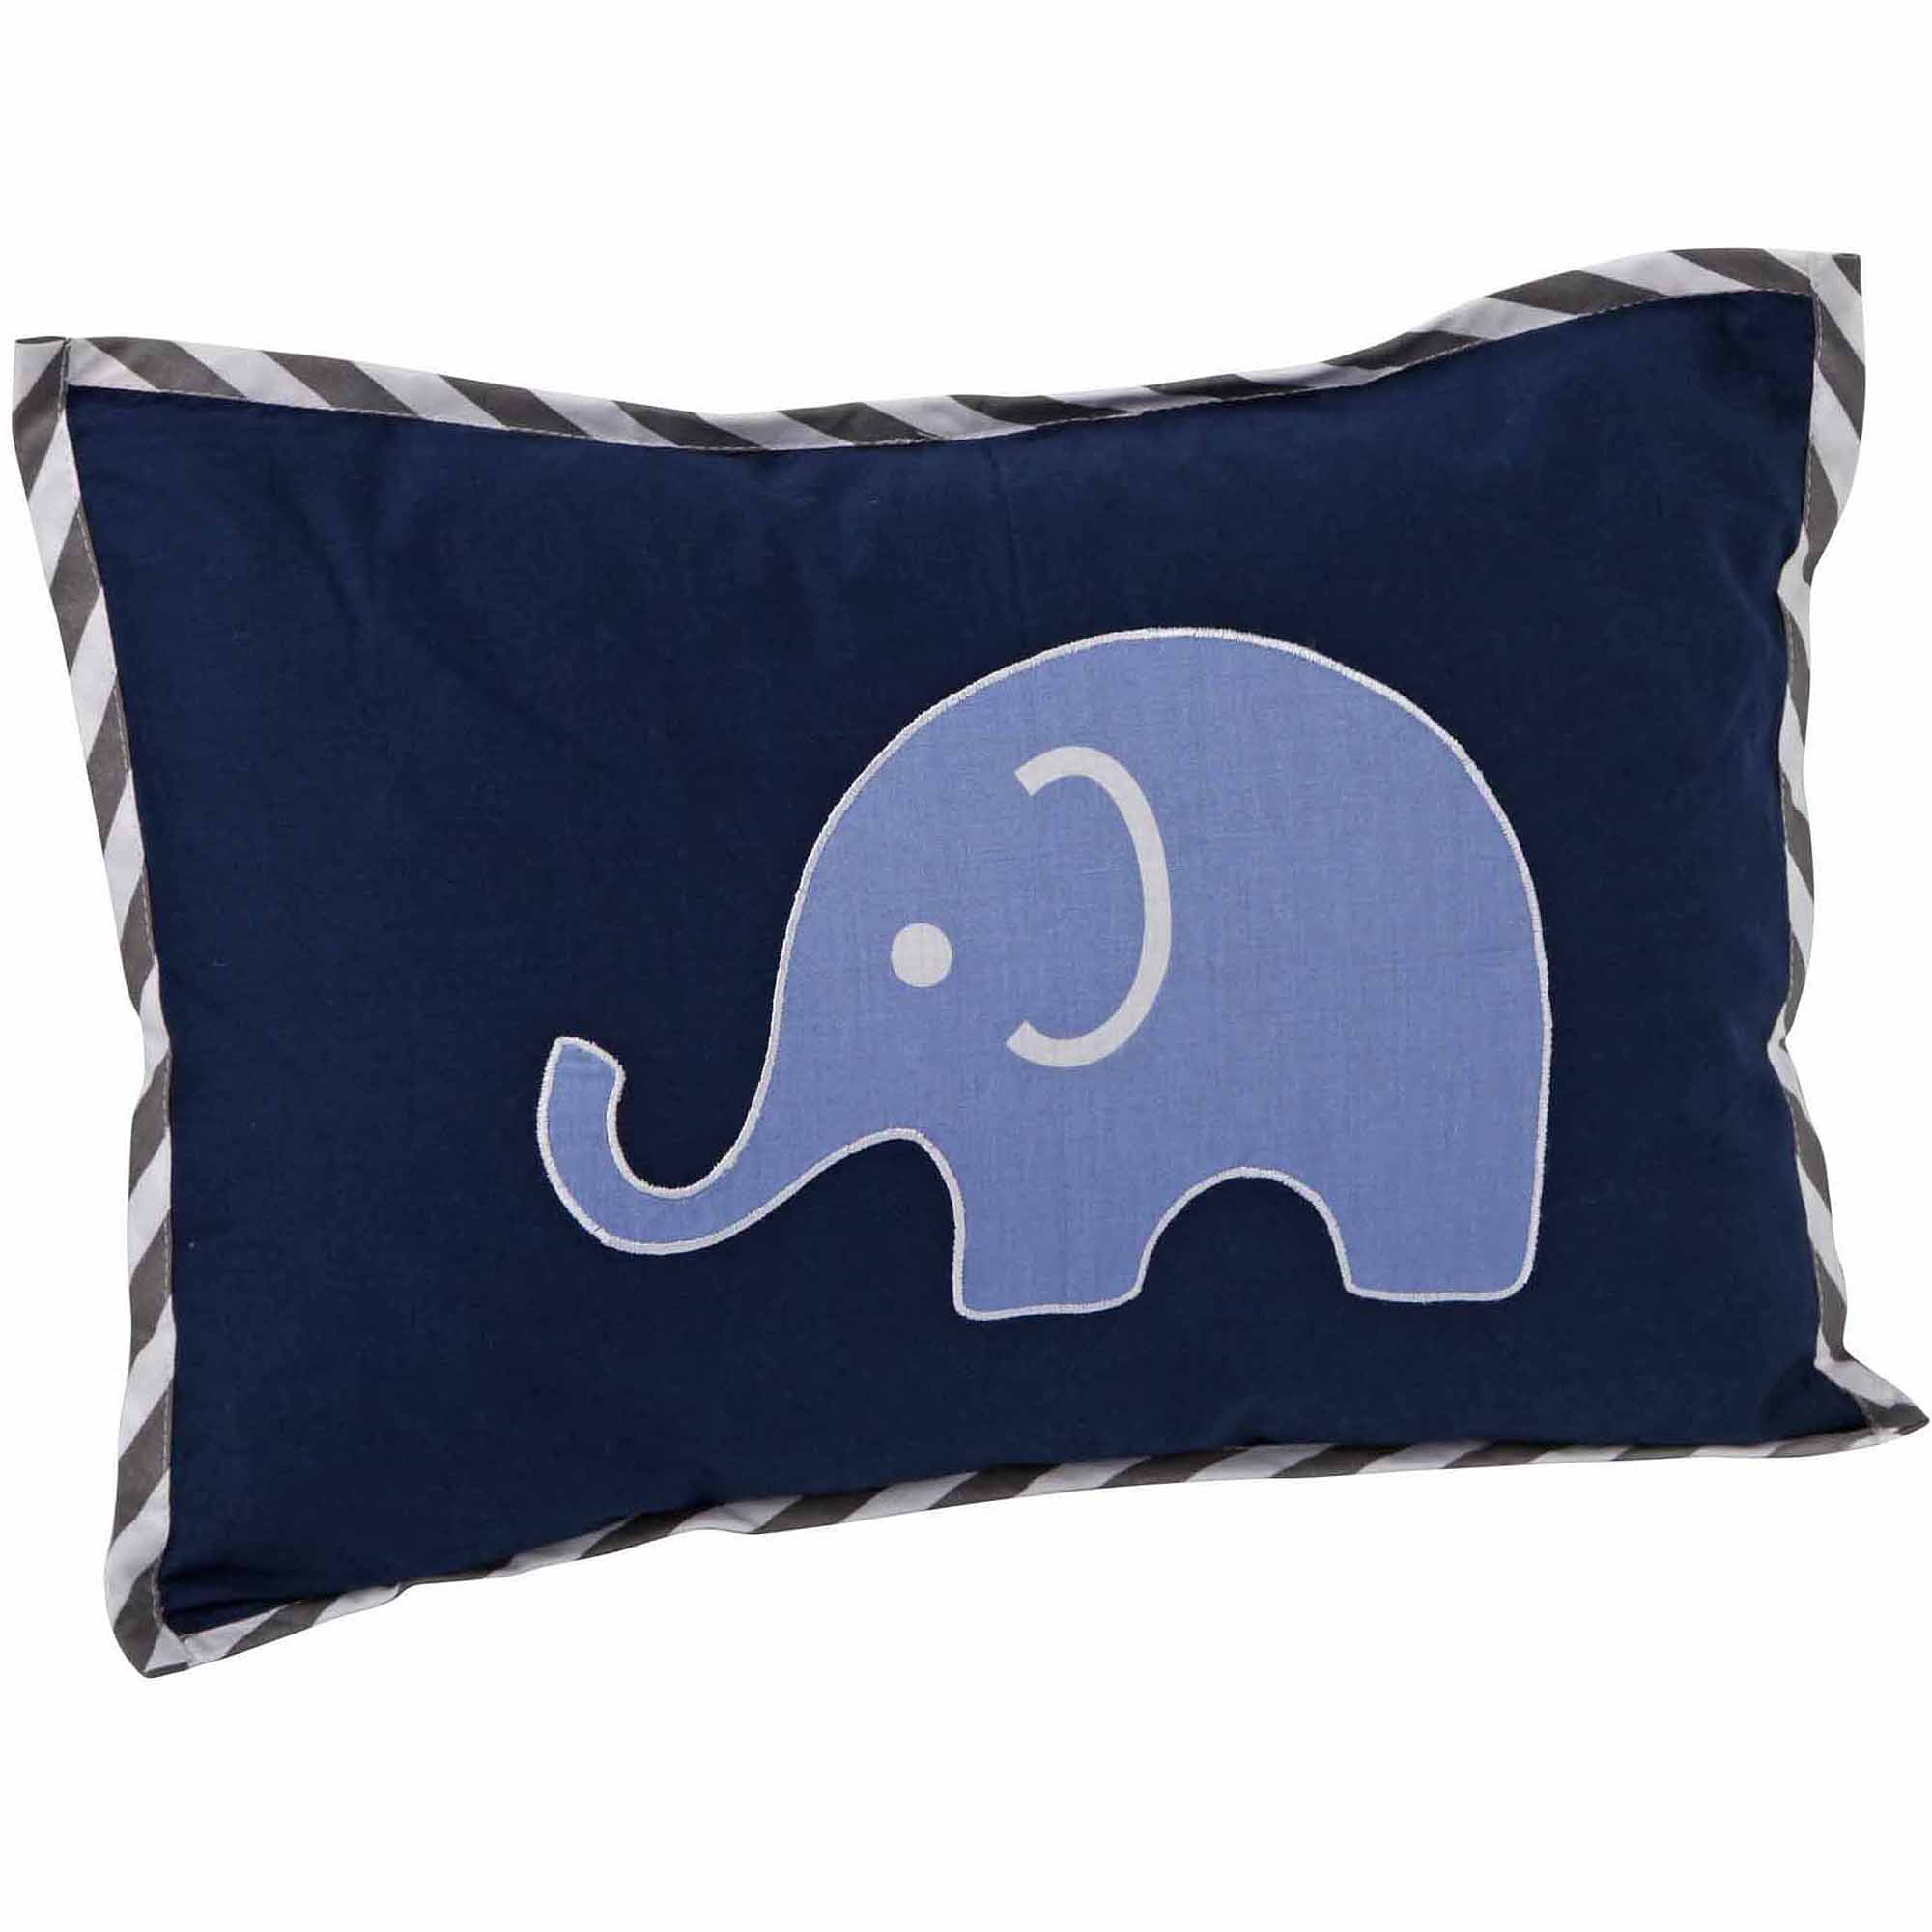 "Bacati Elephants Dec Pillow 12""x16"" with removable 100 % Cotton cover and polyfilled pillow insert, Blue/Gray"